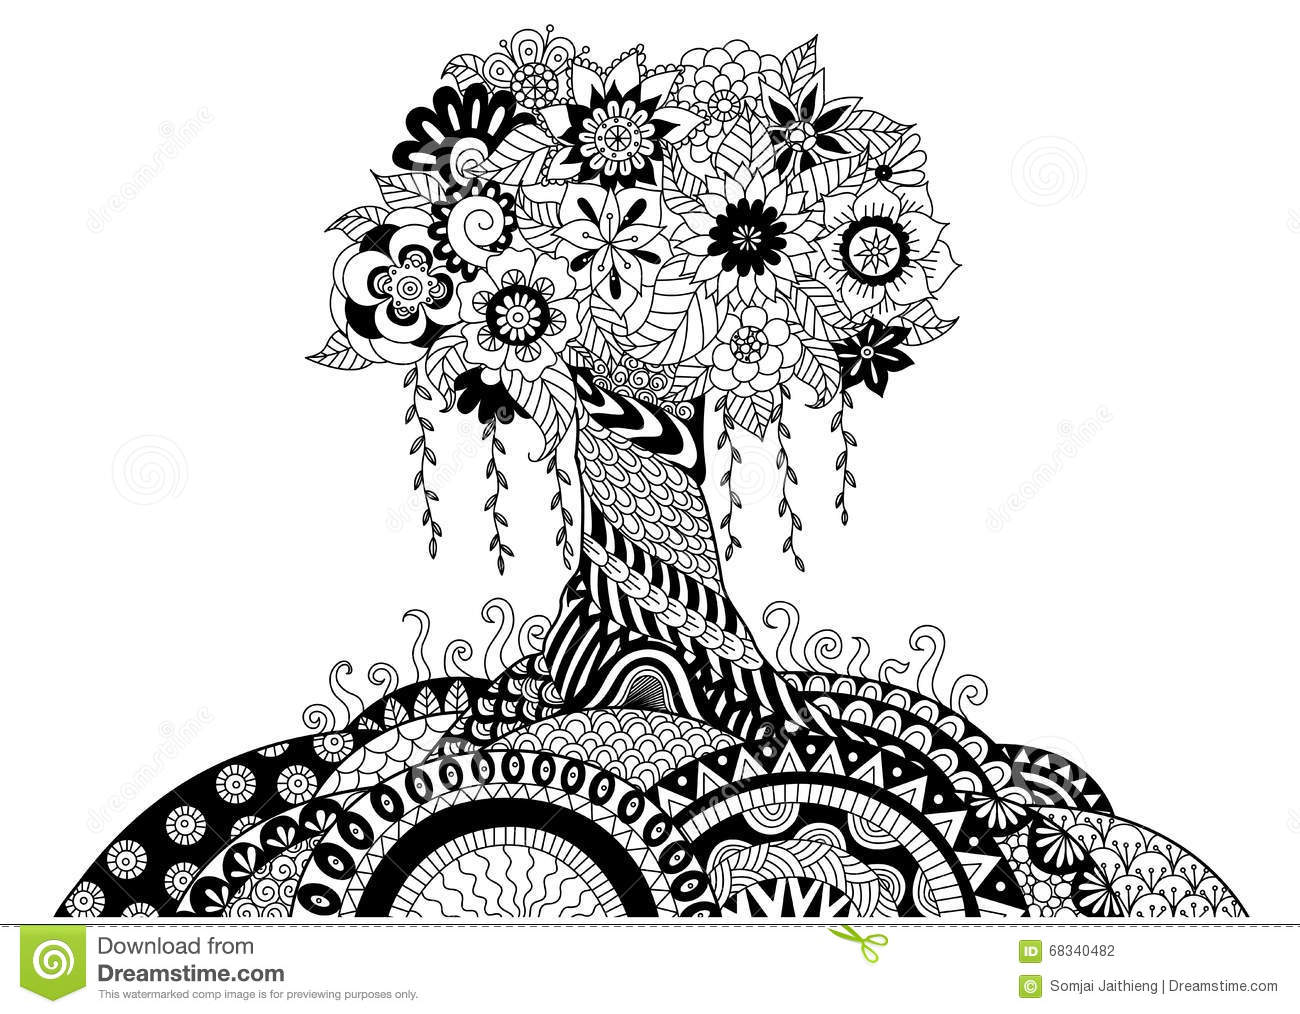 Whimsical Tree Line Art Design For Coloring Book And Other ...